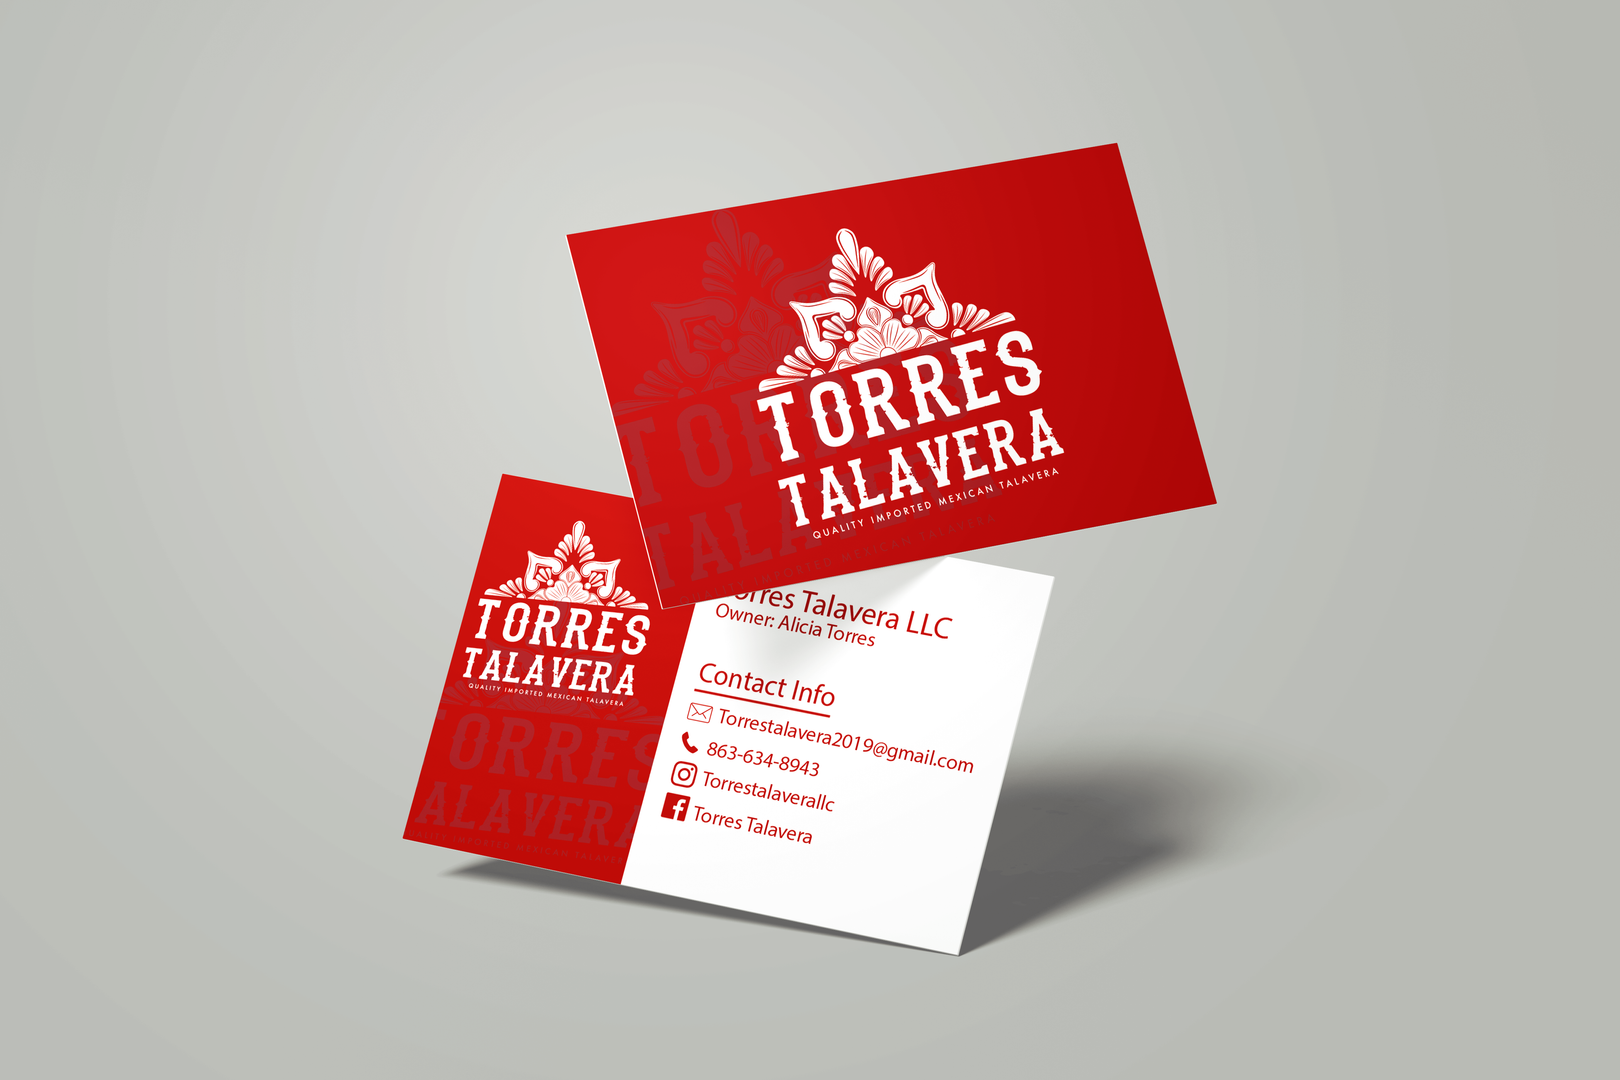 Torres Talavera Business Card.png